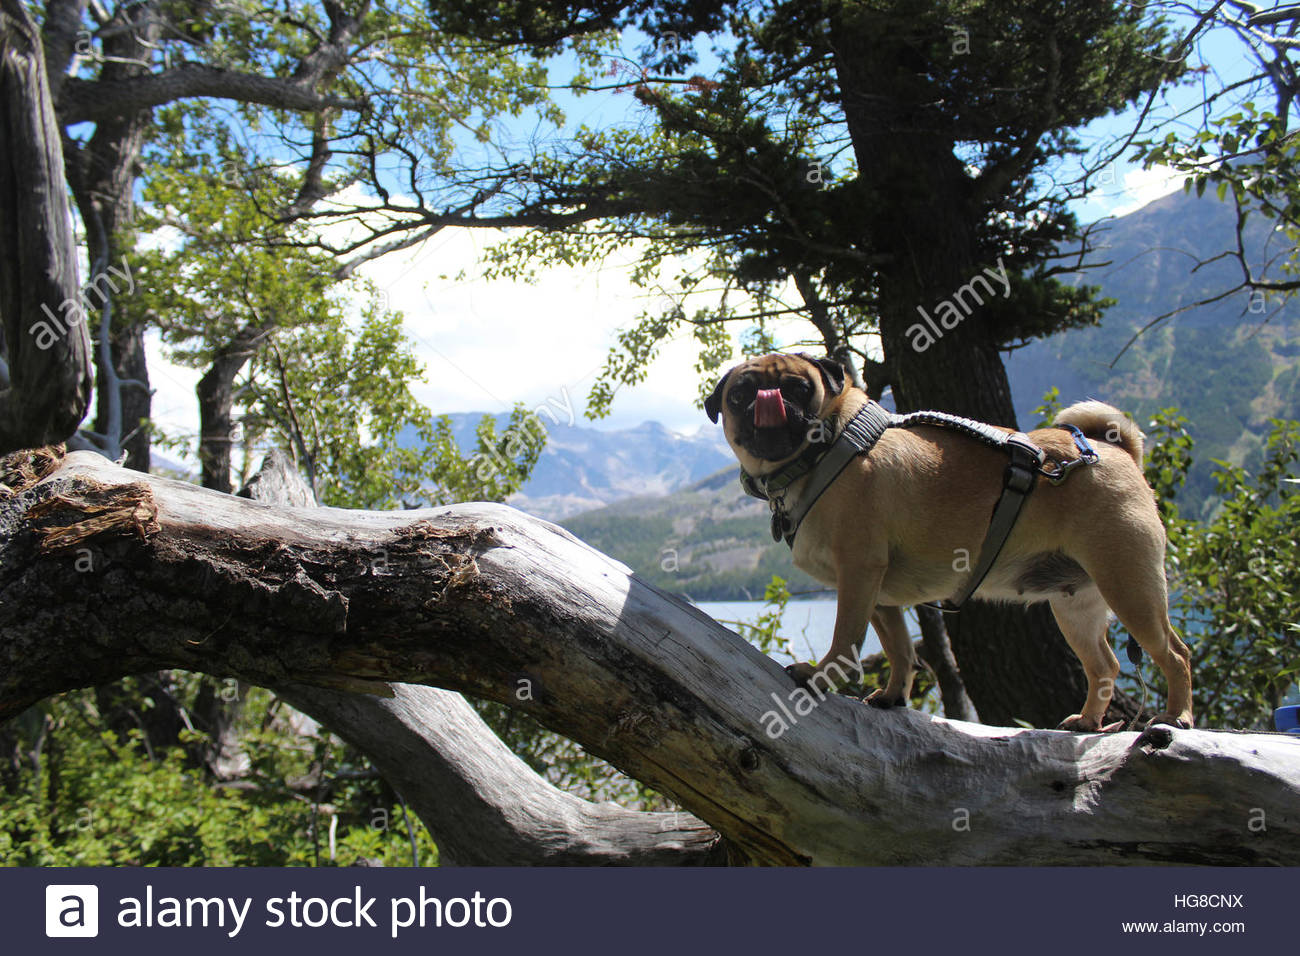 Side view of pug sticking out tongue while standing on tree trunk in forest - Stock Image